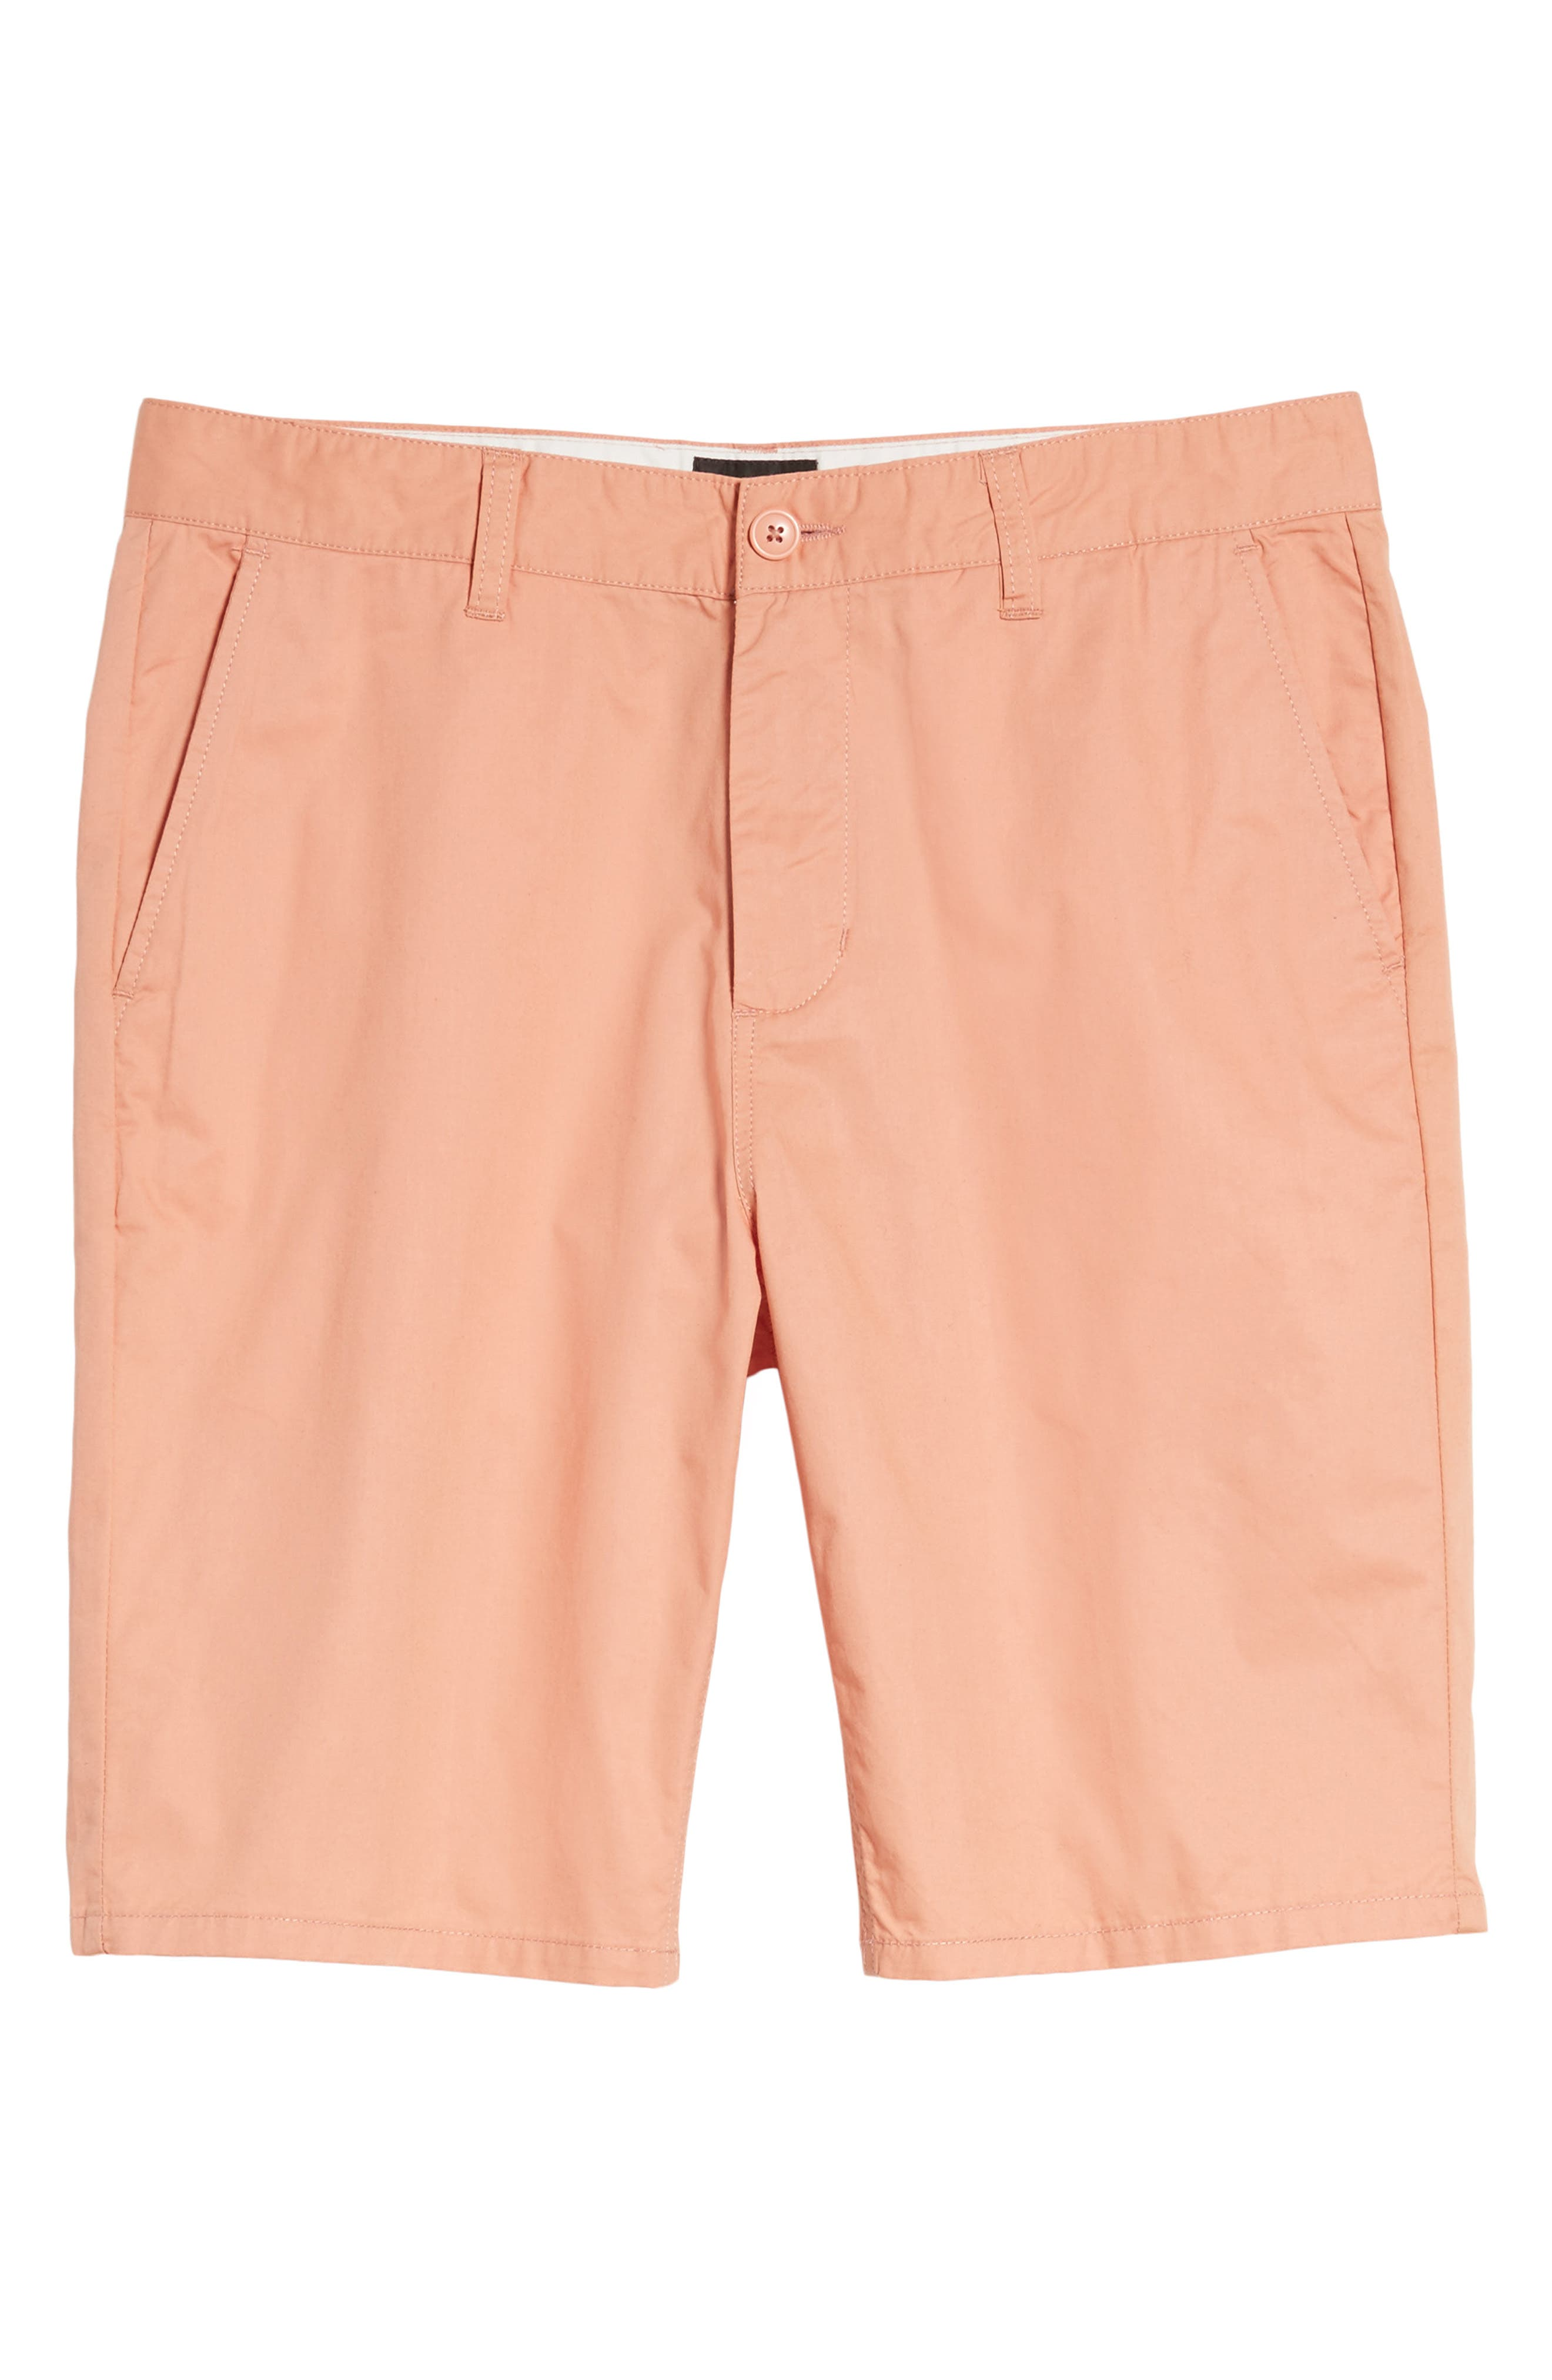 Straggler Light Shorts,                             Alternate thumbnail 6, color,